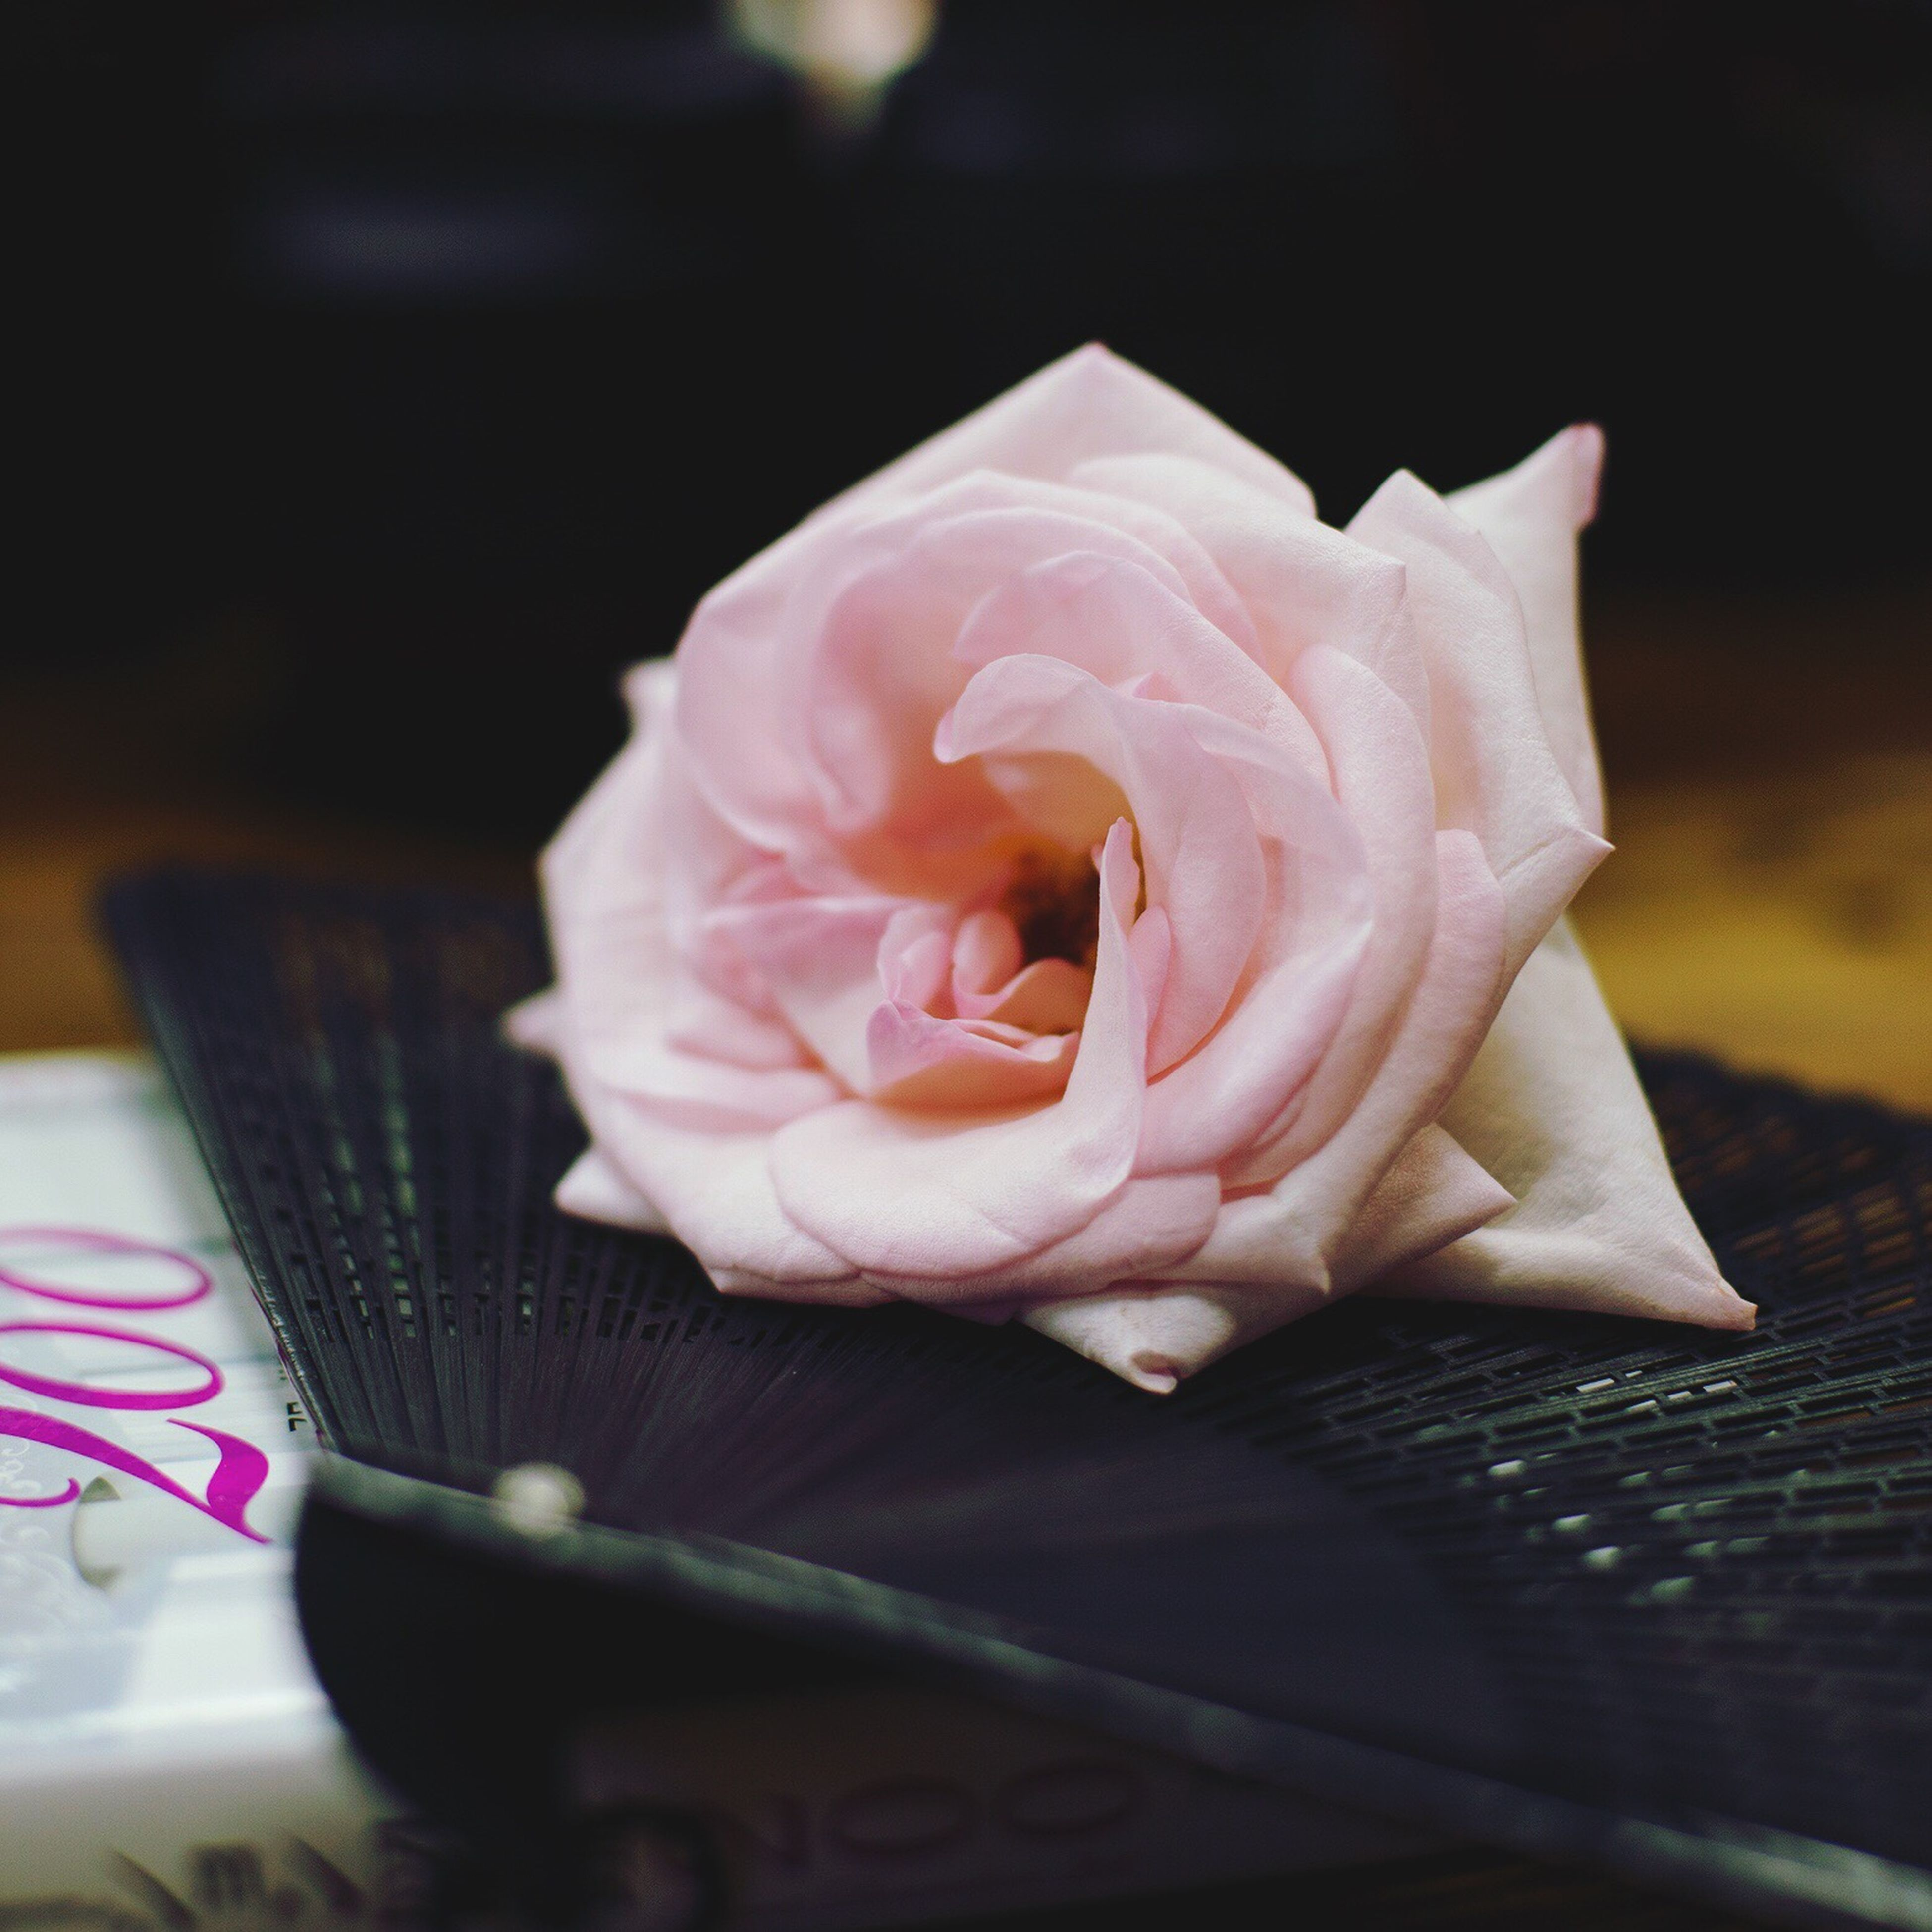 flower, petal, freshness, pink color, fragility, close-up, flower head, rose - flower, selective focus, single flower, indoors, springtime, beauty in nature, table, nature, blossom, rose, softness, botany, pink, in bloom, focus on foreground, no people